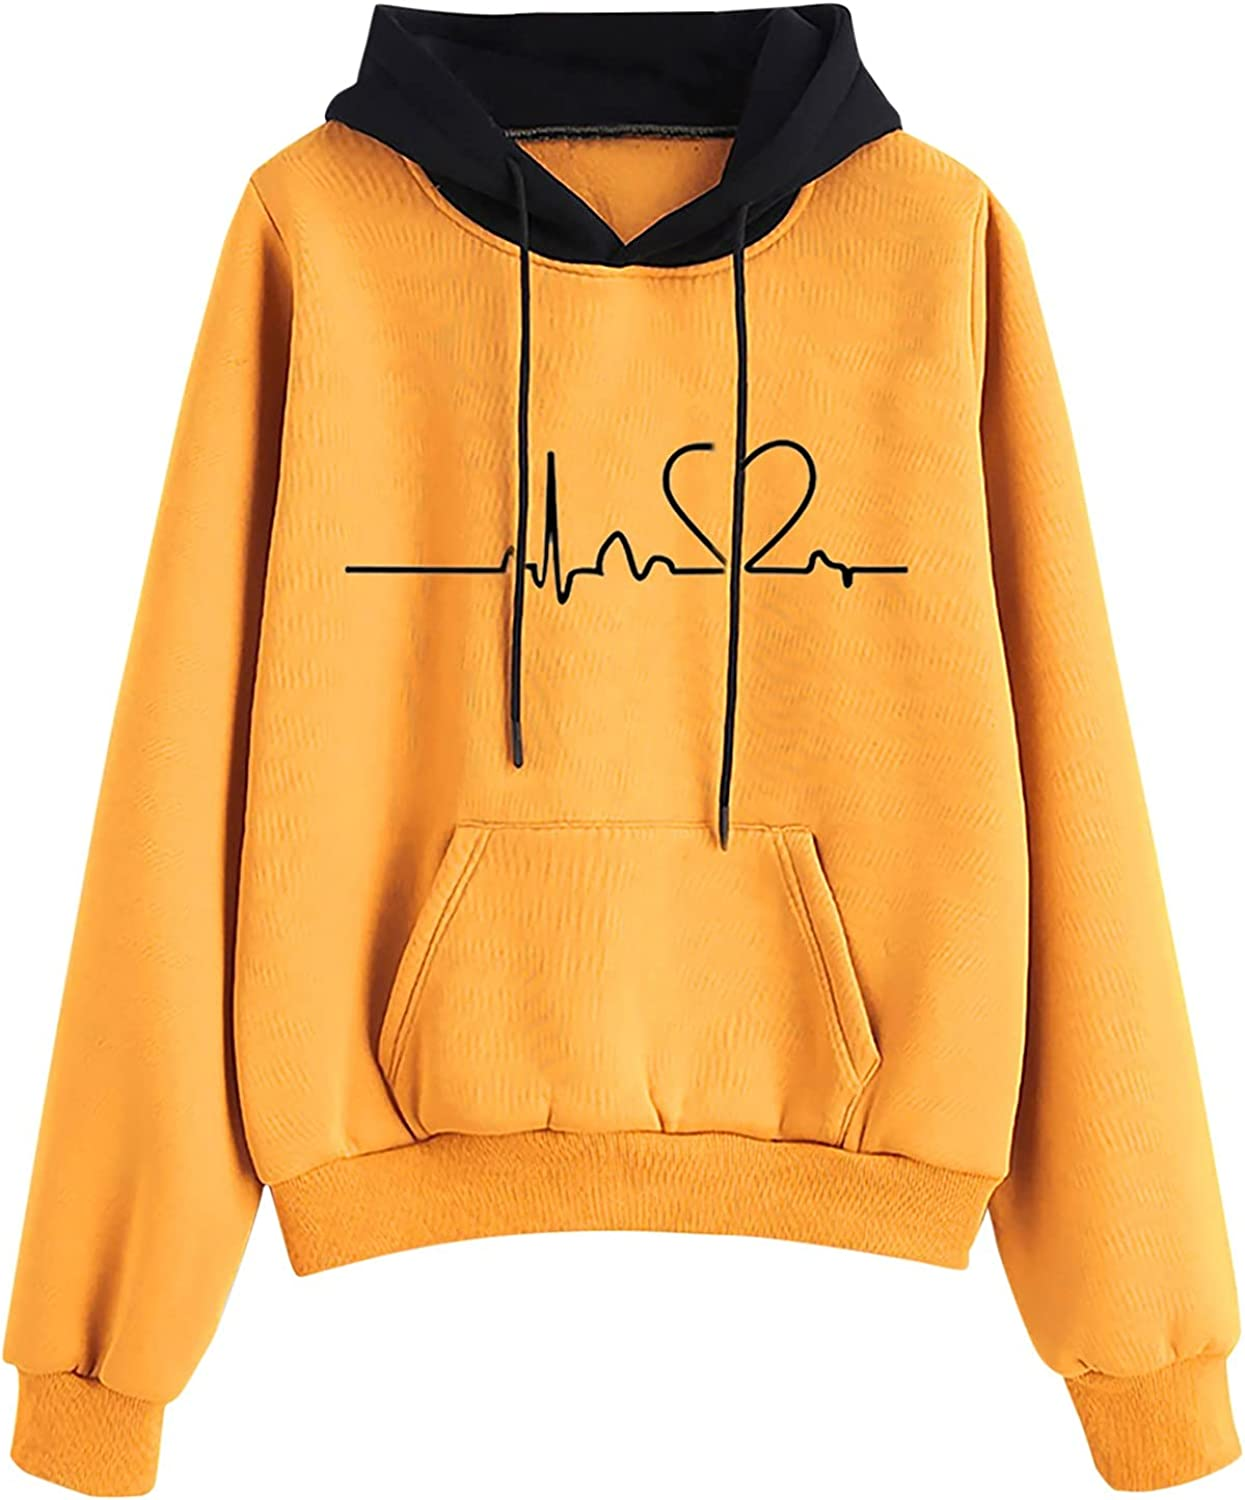 Xinantime Women Pullover Sweatshirt Sports Suit Long Sleeve Patchwork Hoodie Blouse Graphic Print Tunics with Pocket Jumper